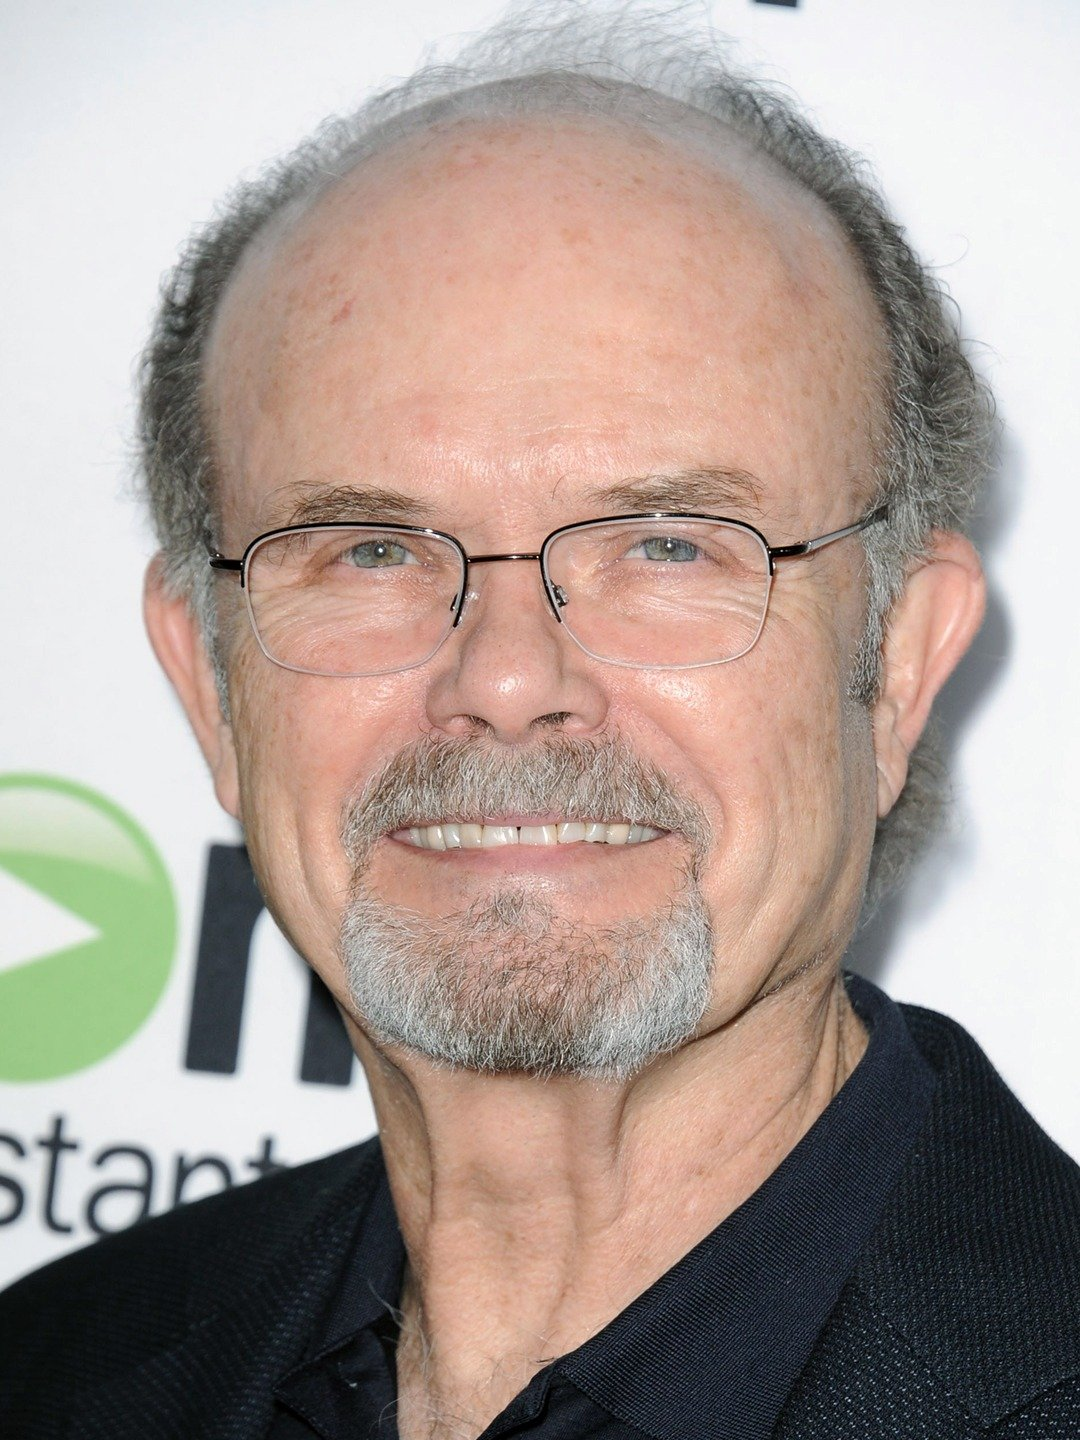 How tall is Kurtwood Smith?